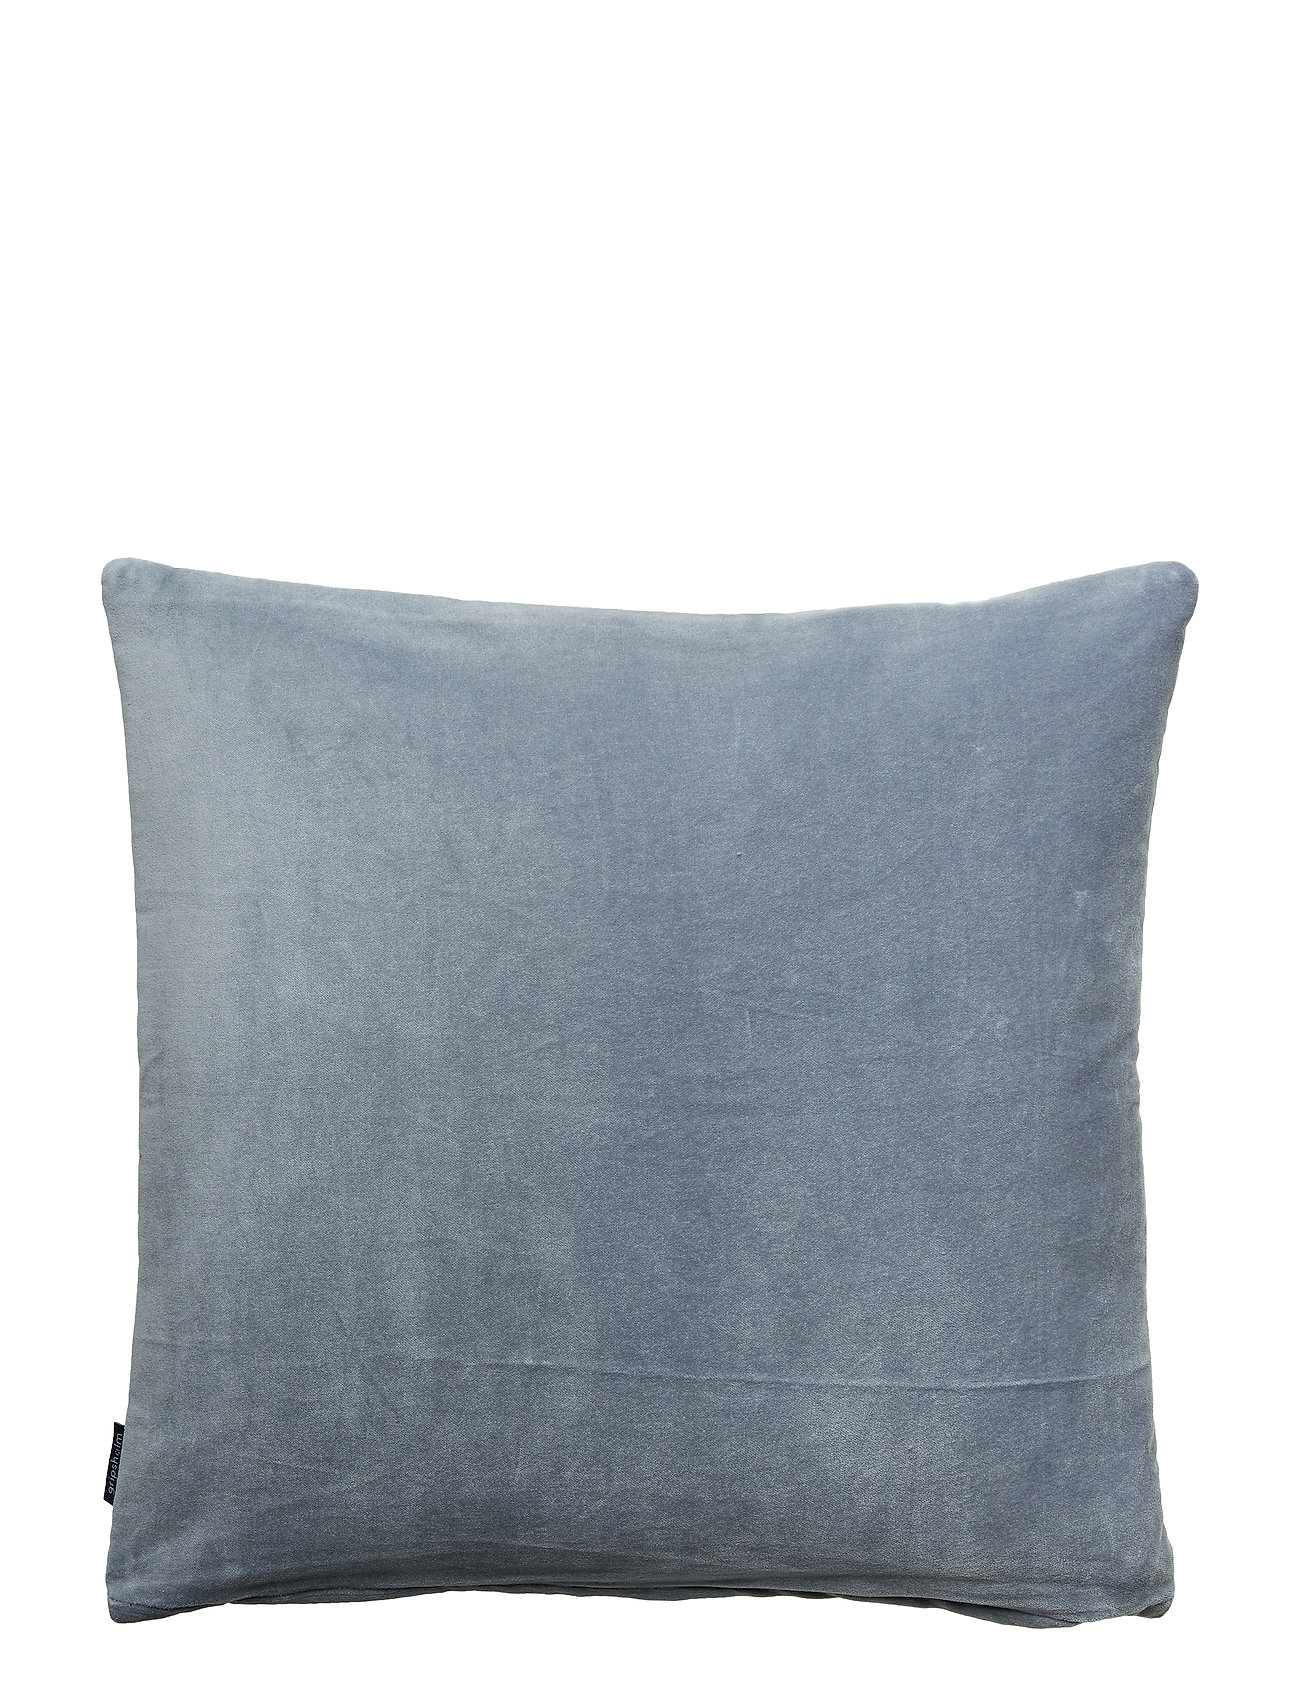 Gripsholm CUSHION COVER AVA GOTS - BLUE WINDS